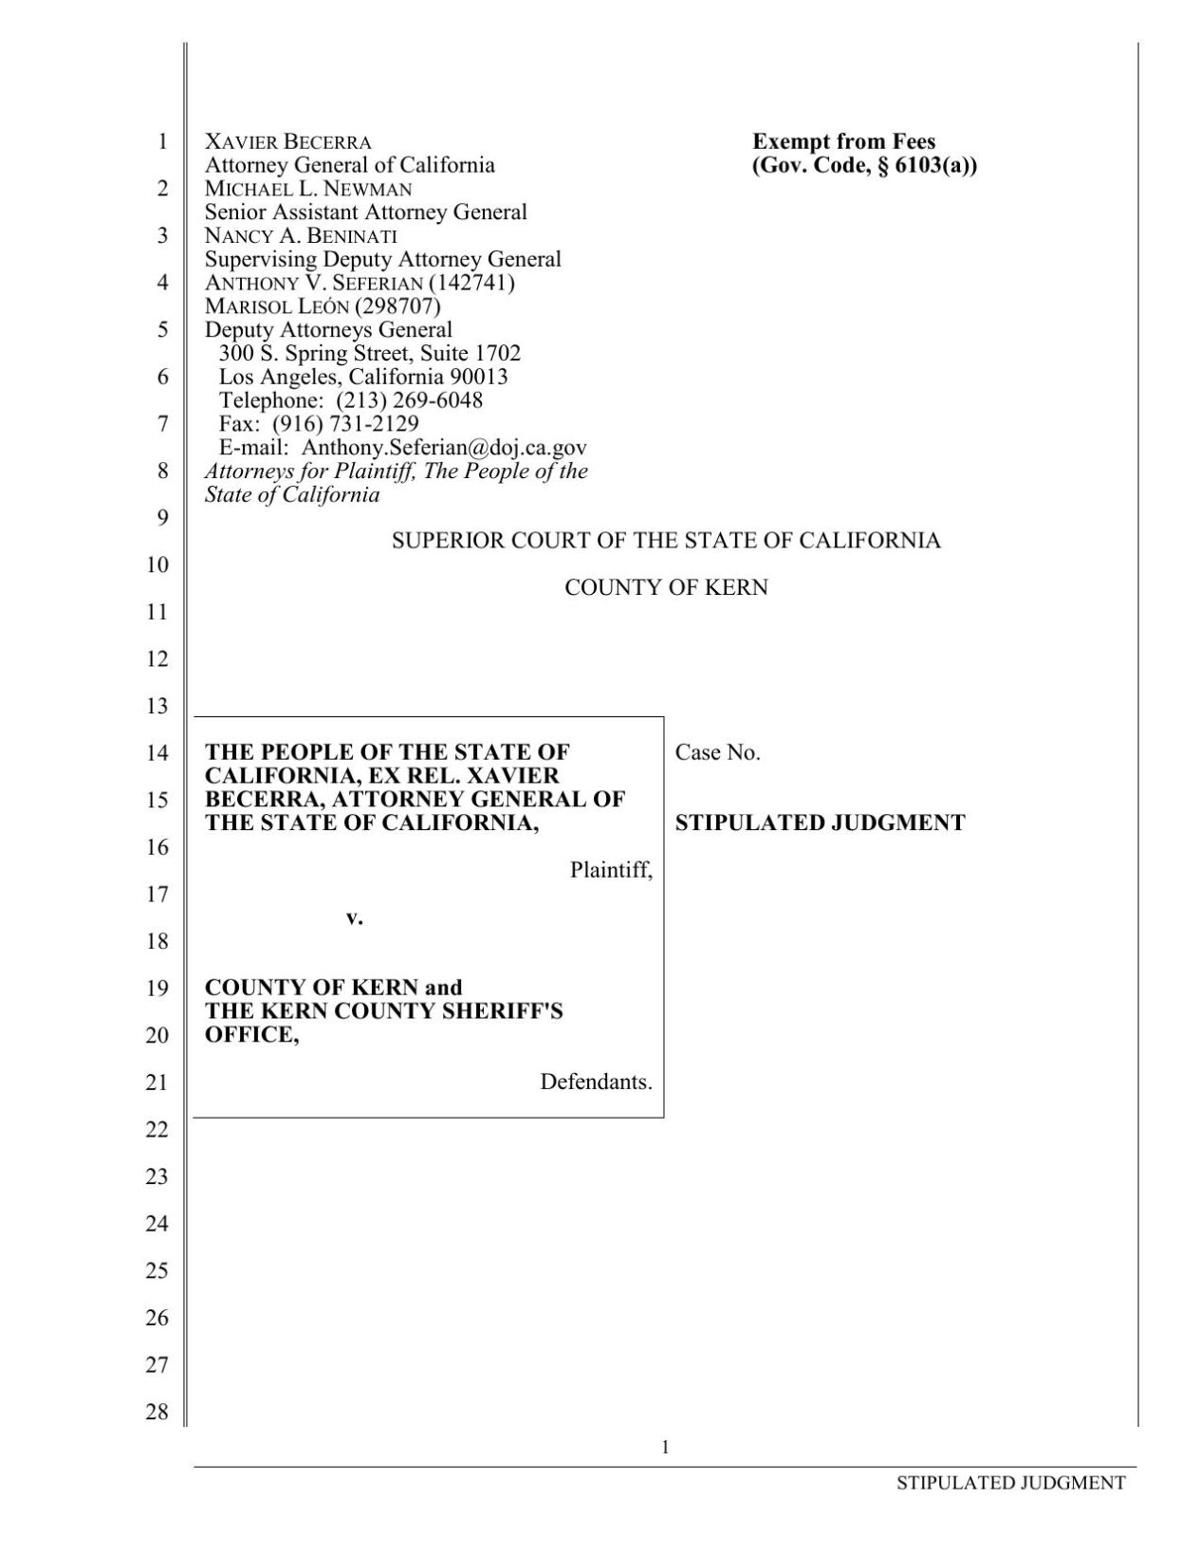 Settlement between Kern County Sheriff's Office and Department of Justice